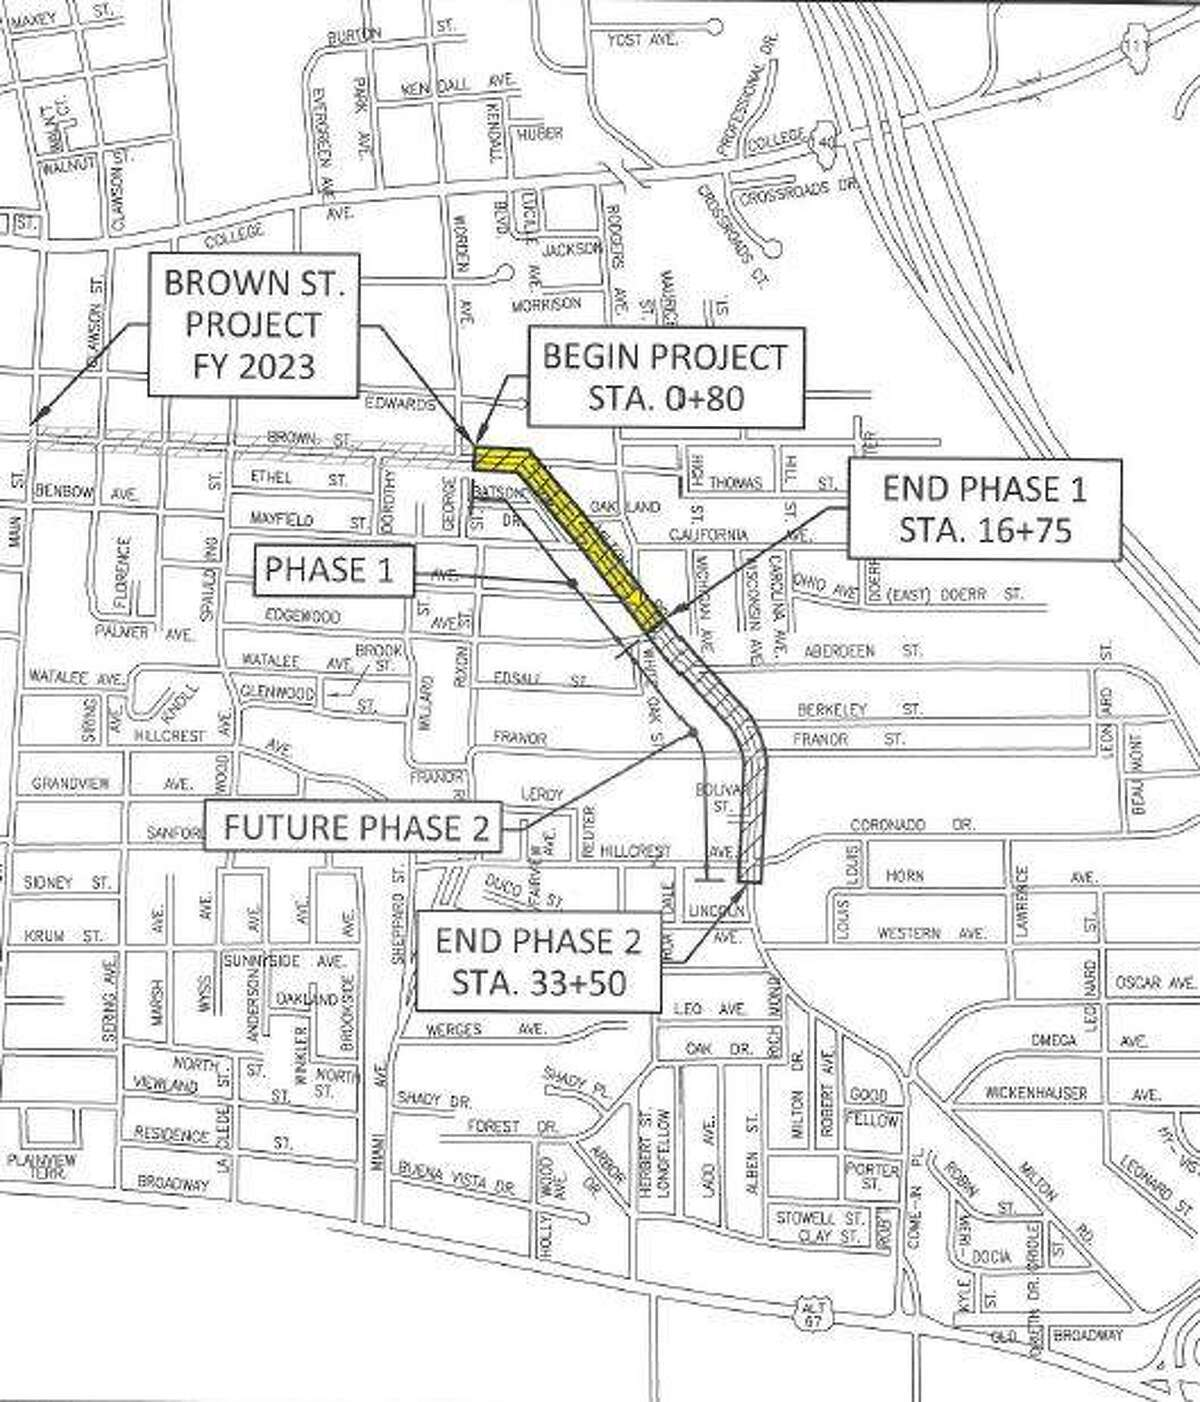 Alton officials are sharing a schematic view of planned work on Milton Road. The area of construction is marked.